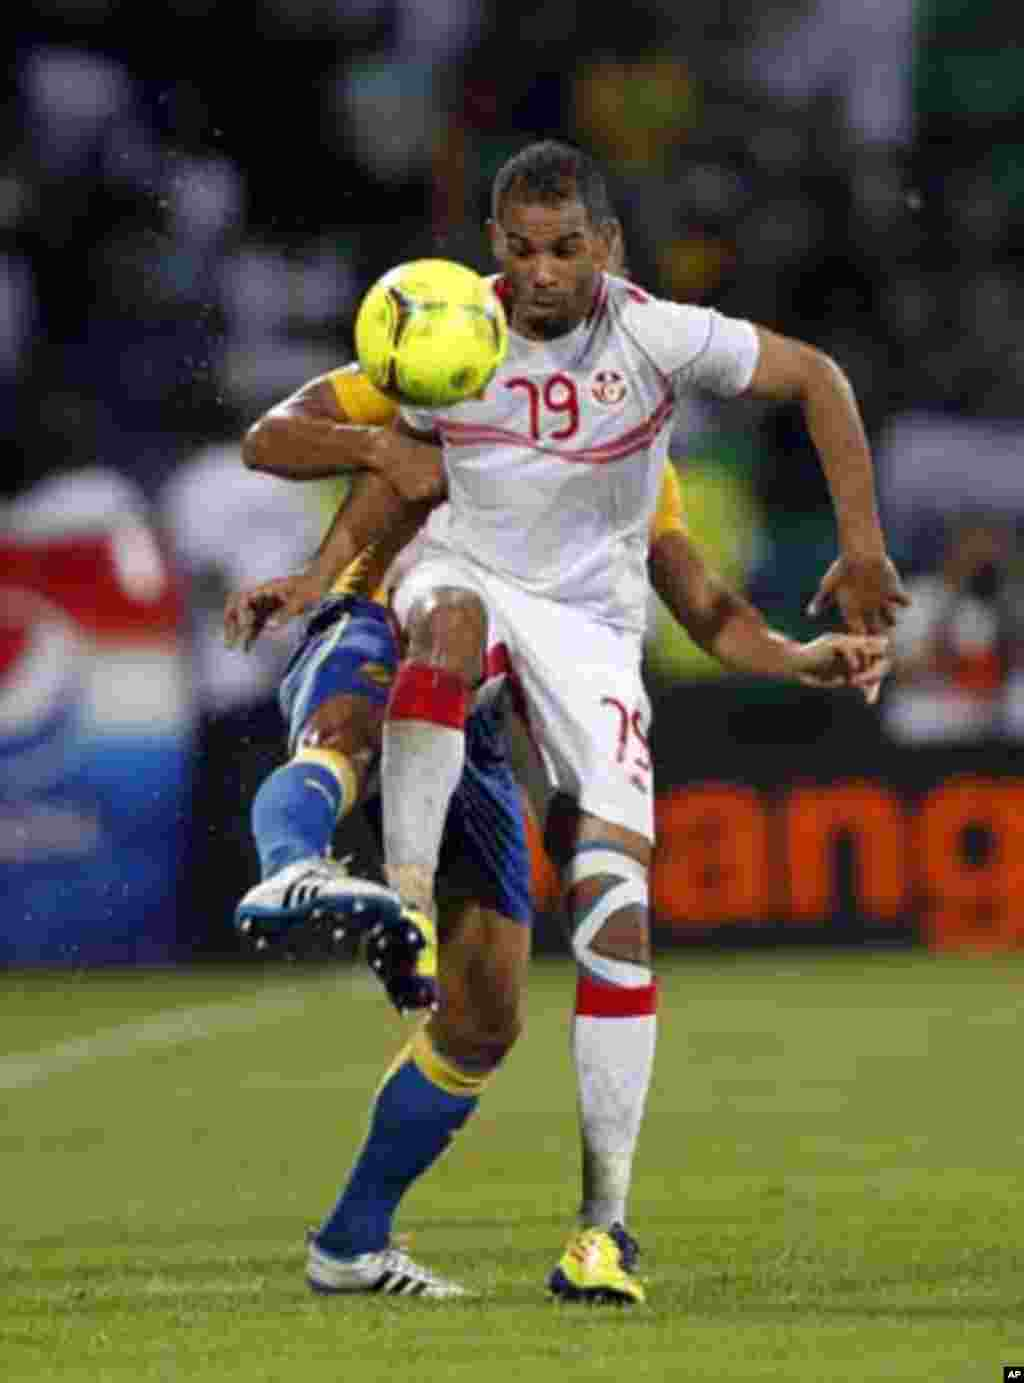 Tunisia's Sabeur Khalifa (front) challenges Lloyd Palun of Gabon during their African Cup of Nations Group C soccer match at Franceville stadium in Gabon January 31, 2012.